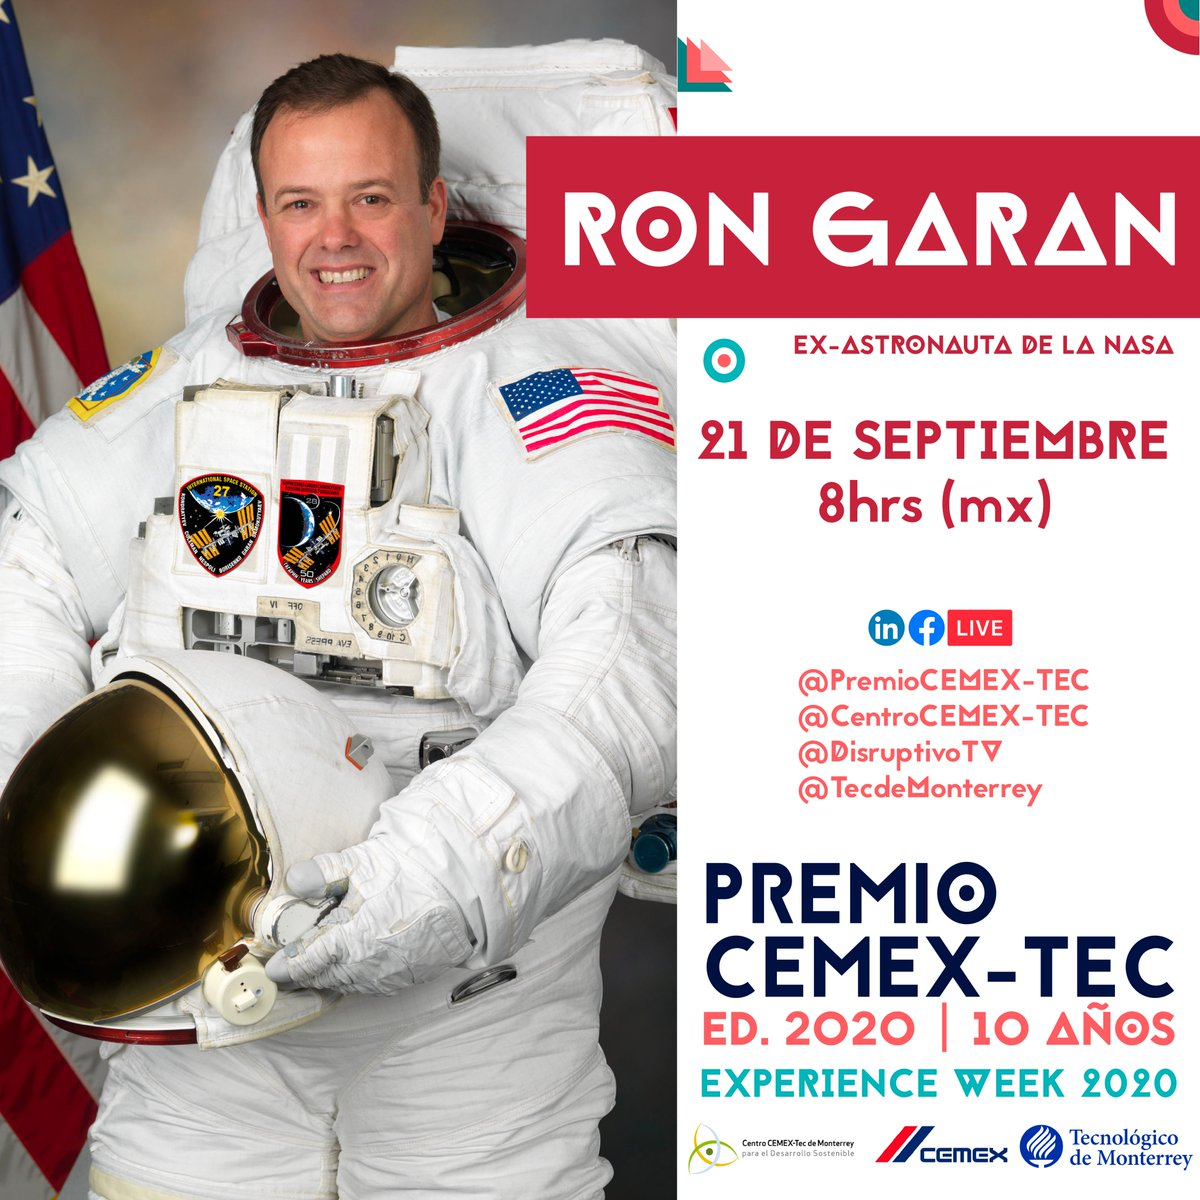 Join us at the CEMEX-TEC Award onboarding event, were we will recognize the 33 winner project of the 2020 award edition, and hear a keynote by @Astro_Ron, former NASA astronaut. https://t.co/Il6dA8v75S